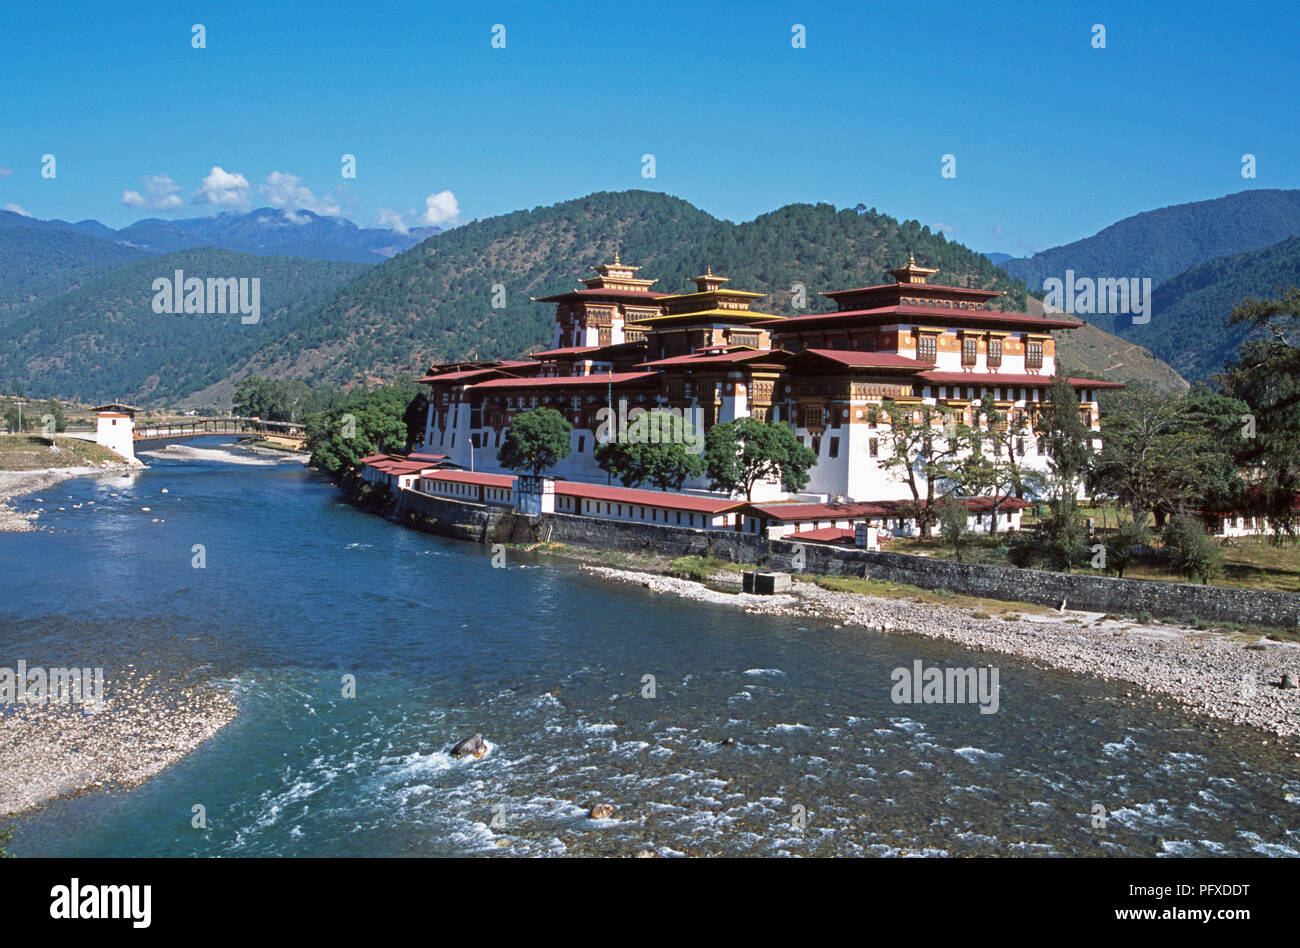 View across Mo Chhu river of Punakha Dzong in Bhutan - Stock Image